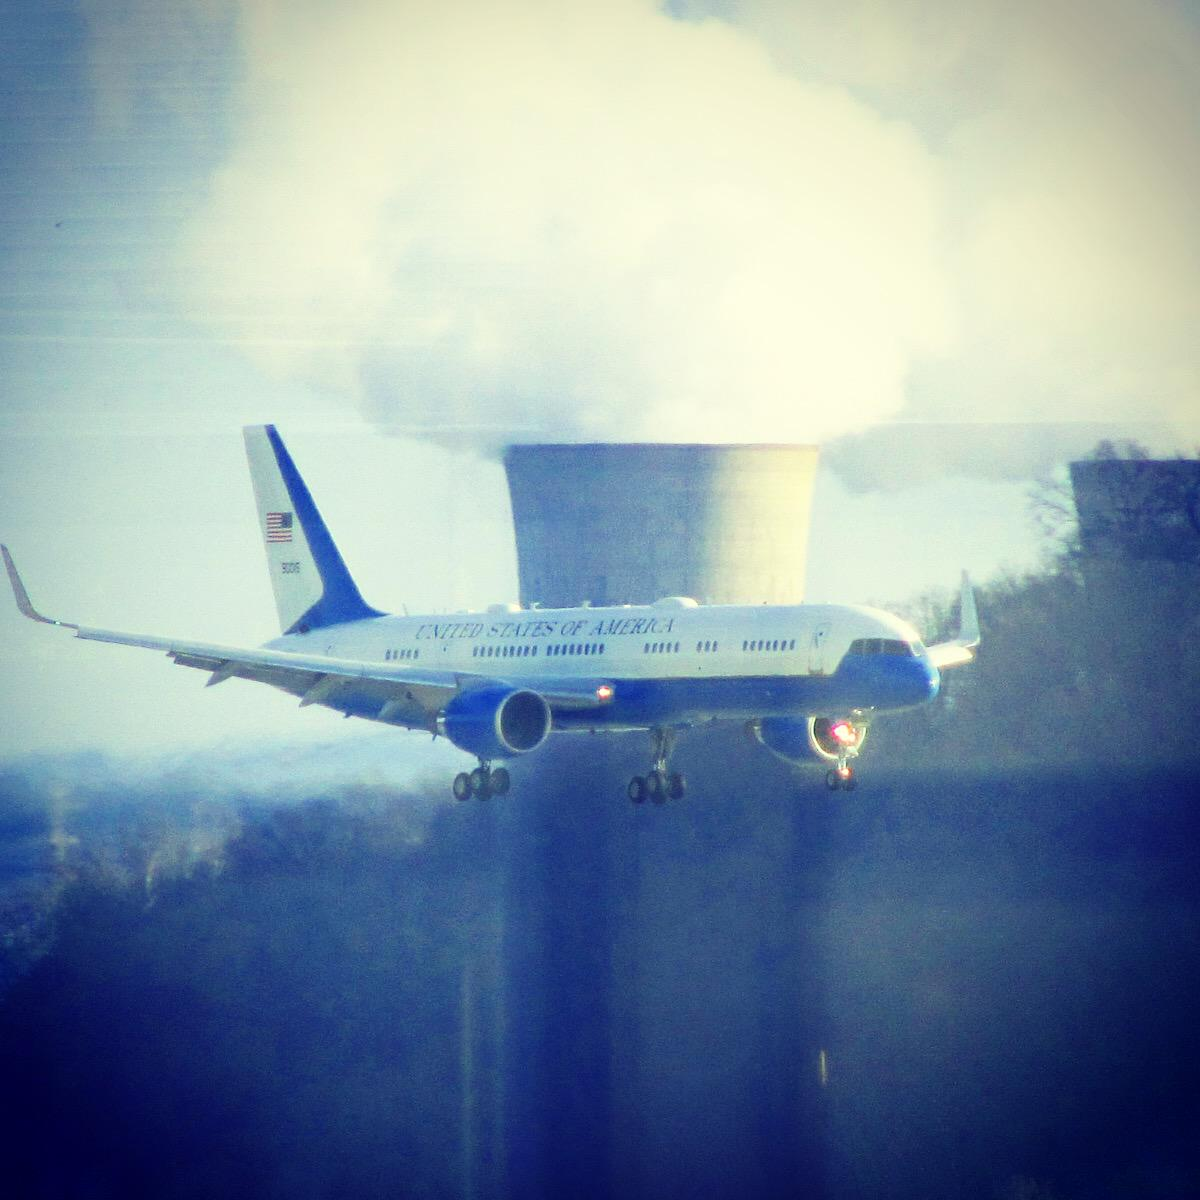 In case you missed our visitor from last week...enjoy! #AirportThrowdown http://t.co/8AKaUFi68x